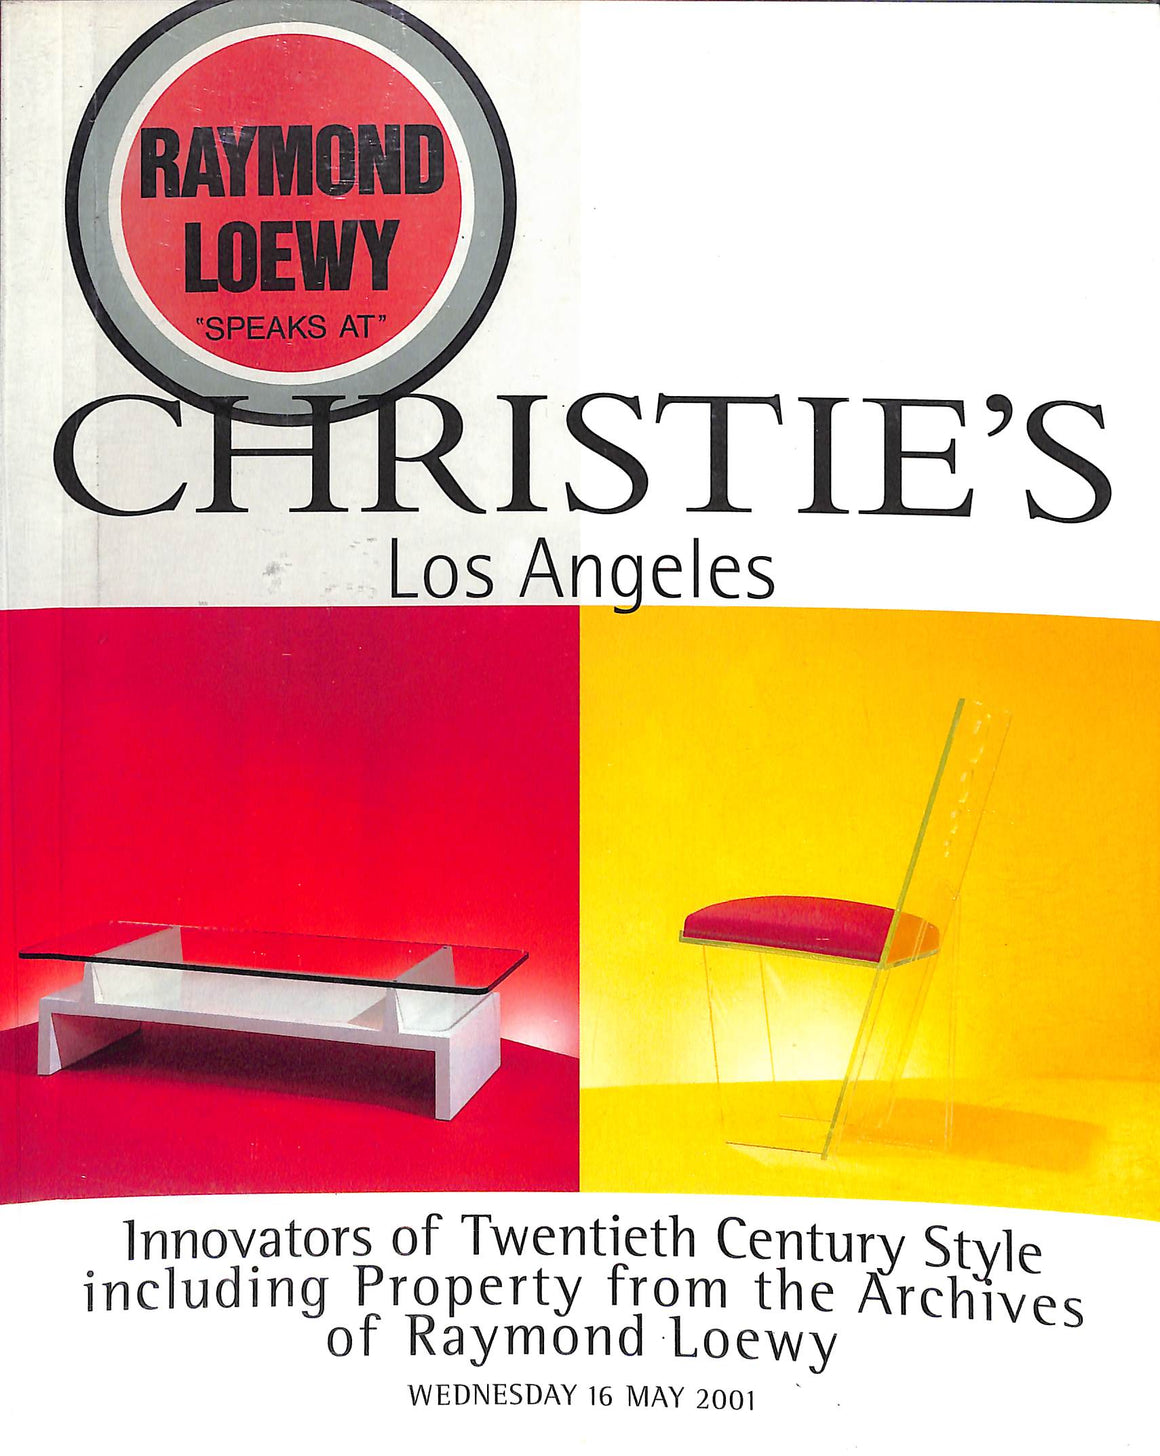 Innovators of Twentieth Century Style